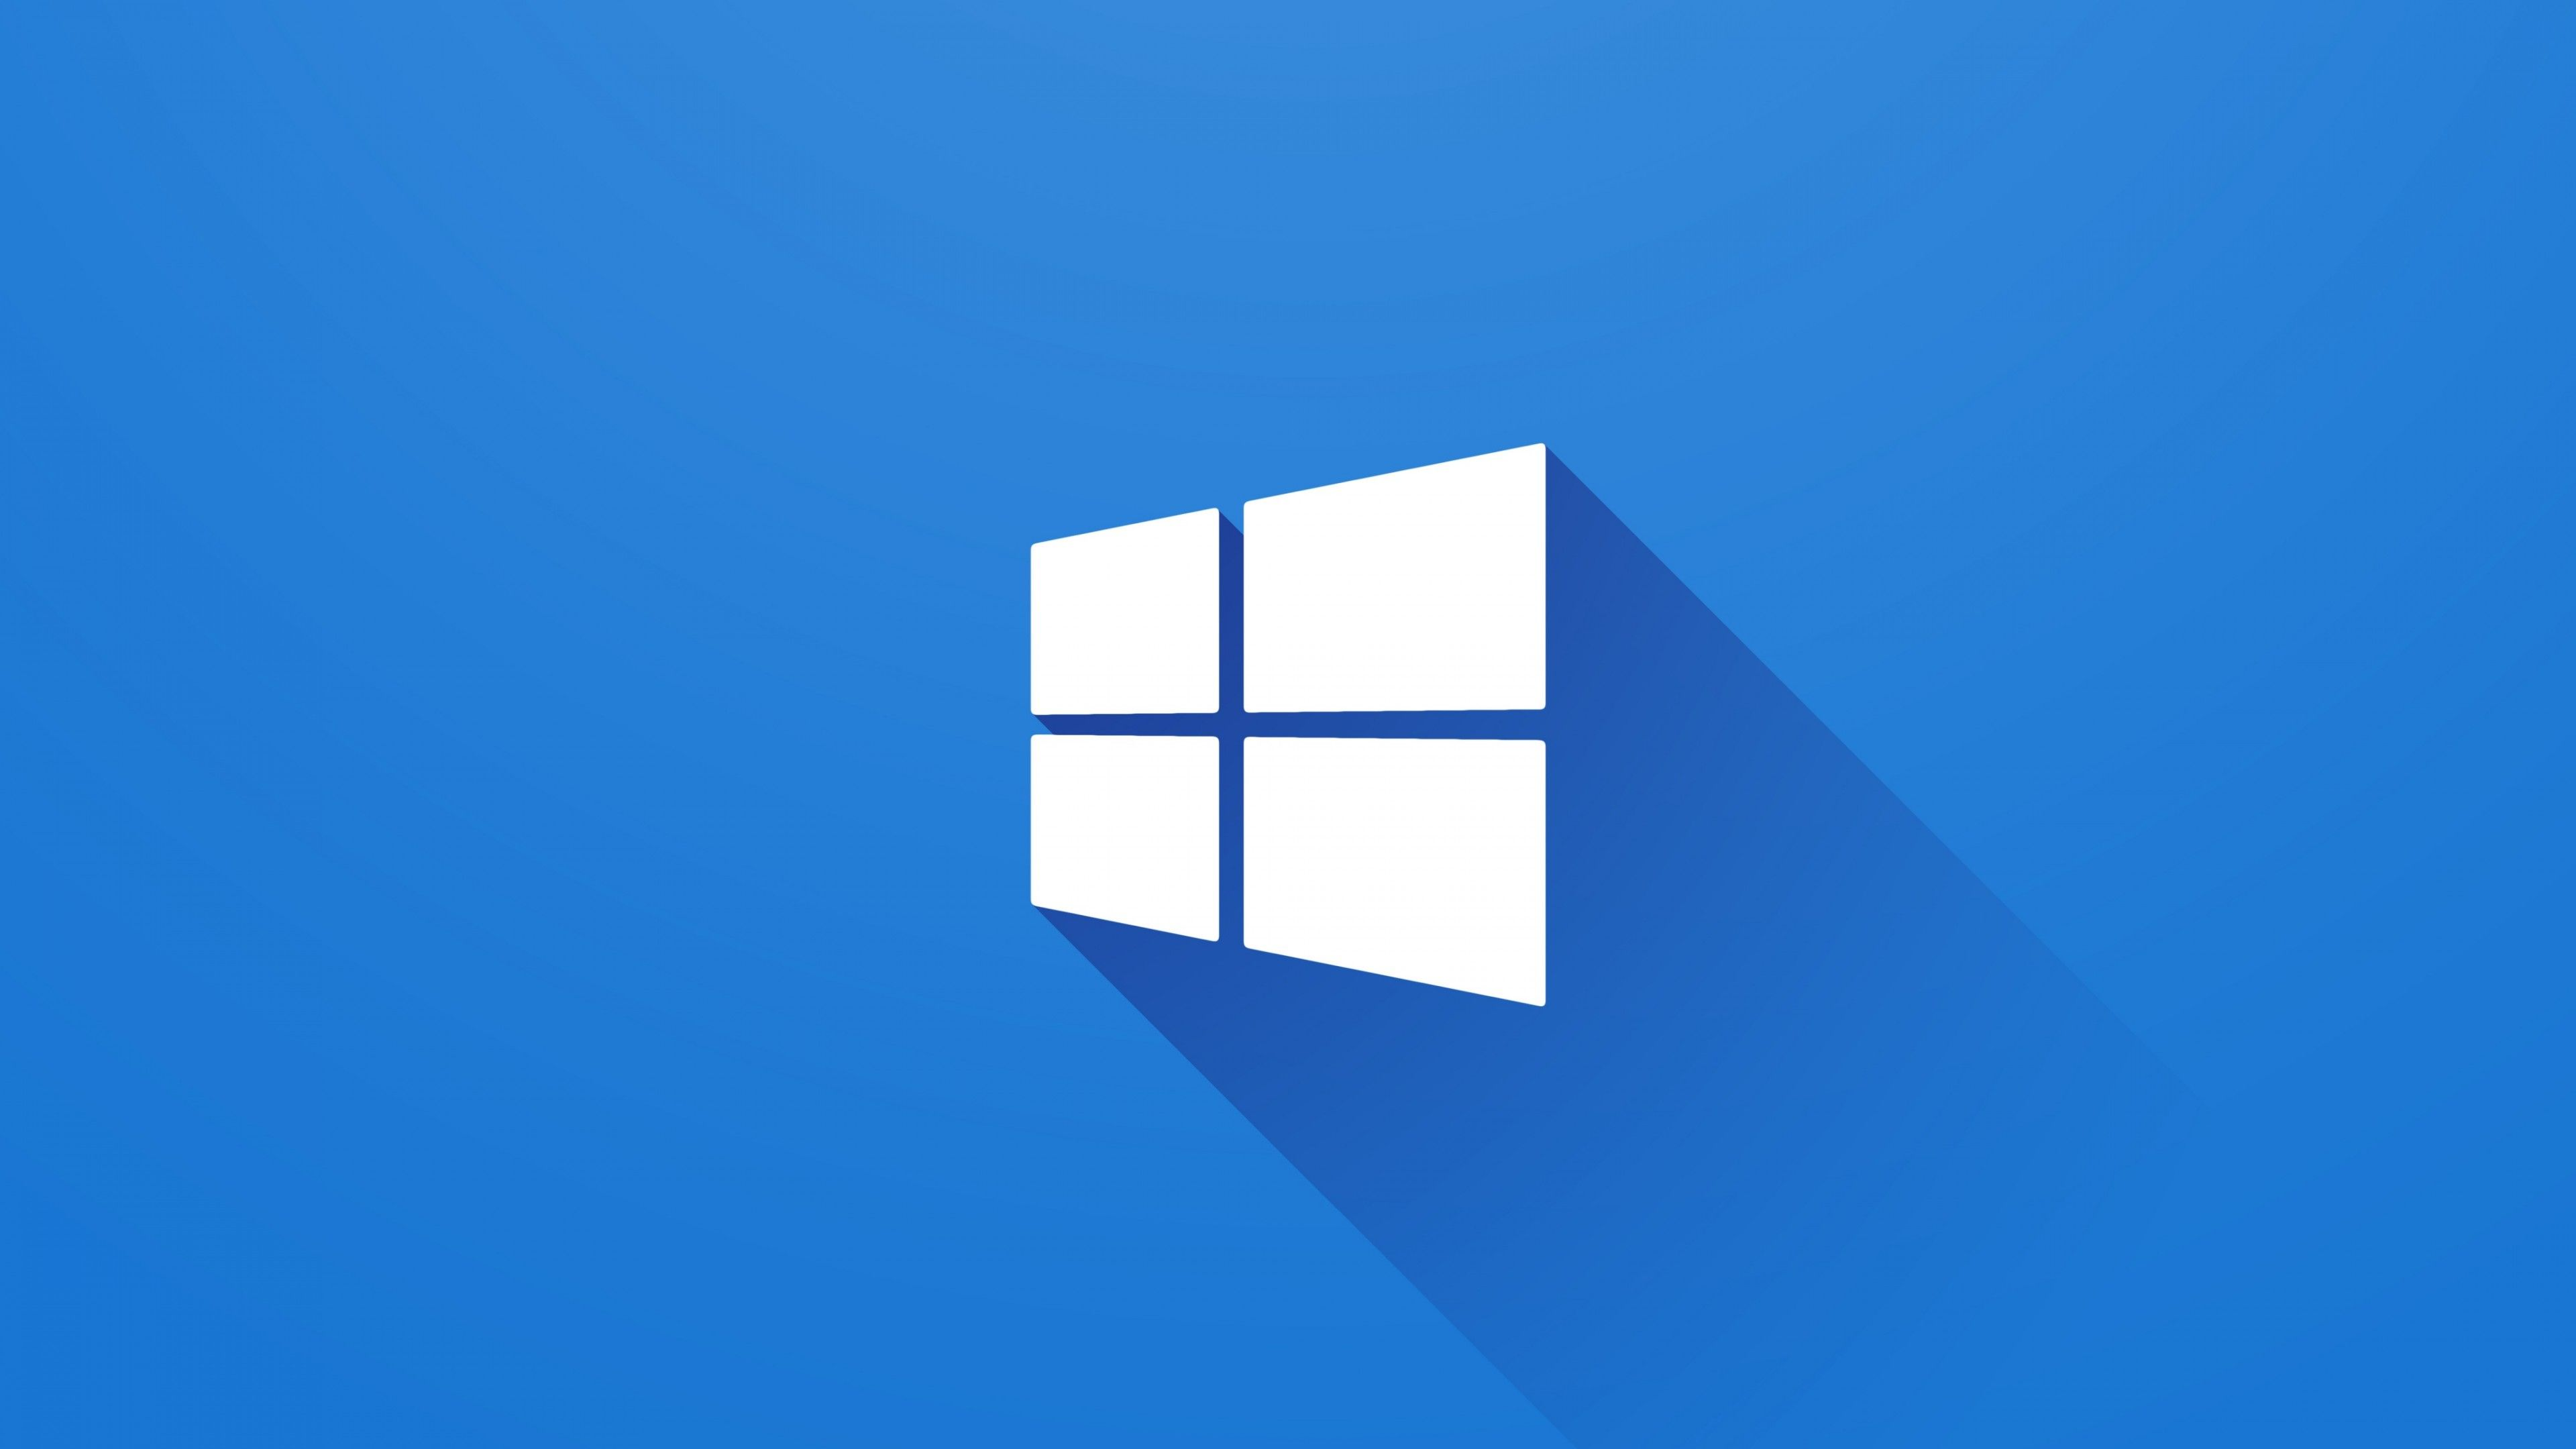 Upgrade Your Pc To Windows 10 Microsoft Wallpaper Windows Wallpaper Wallpaper Windows 10